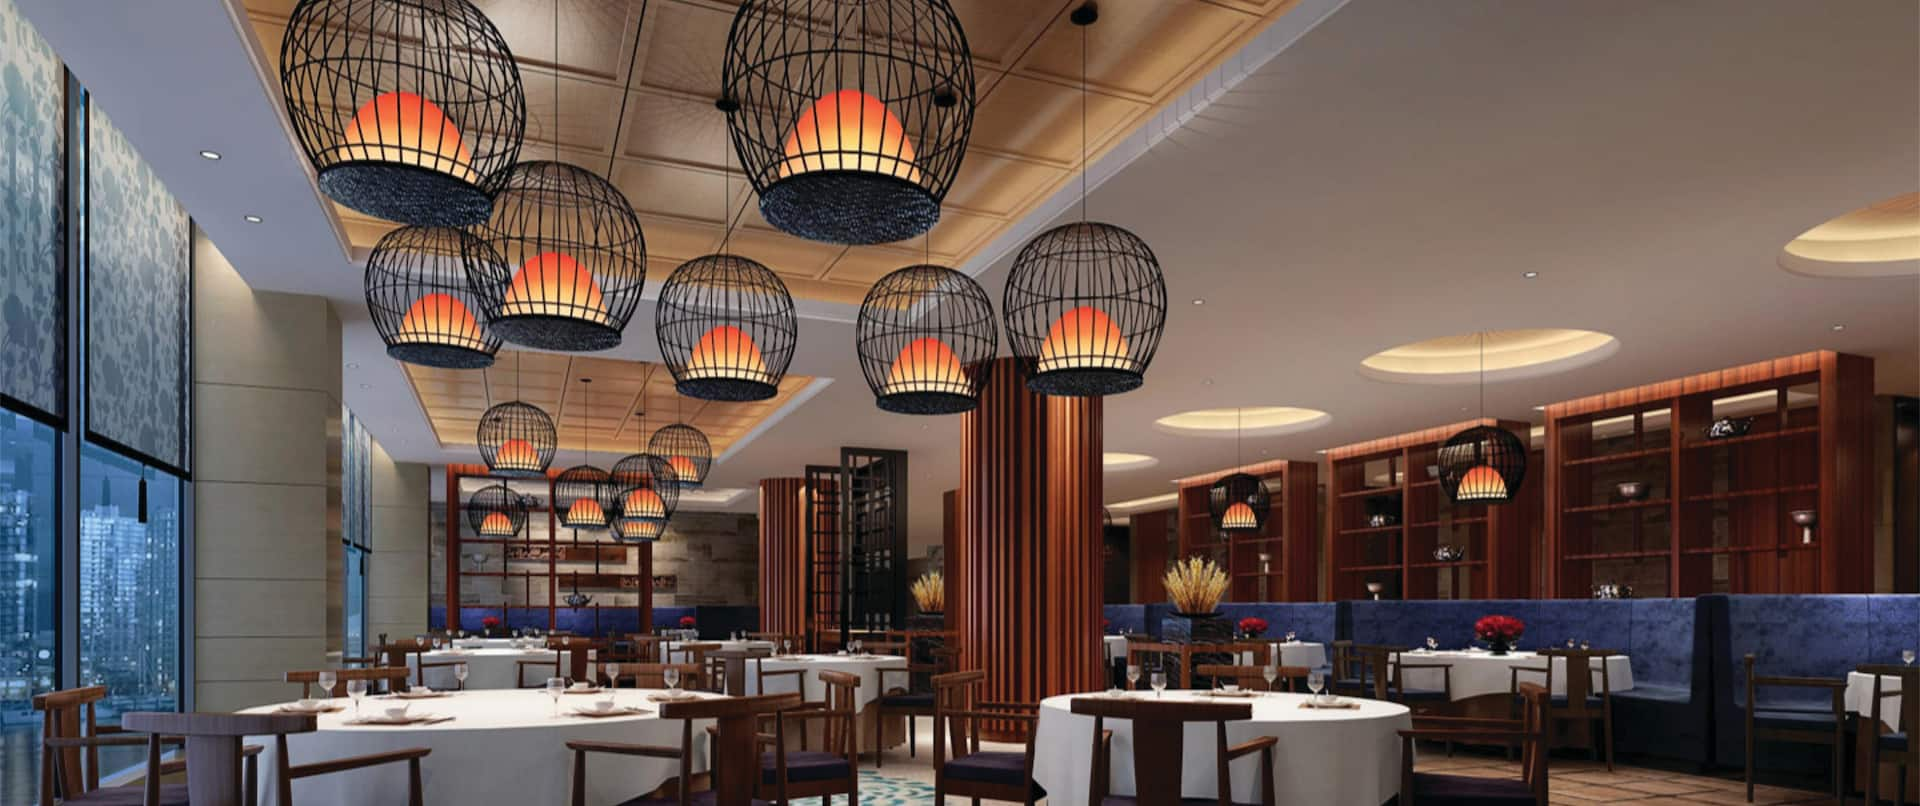 Tables, chairs and hanging lights in a restaurant